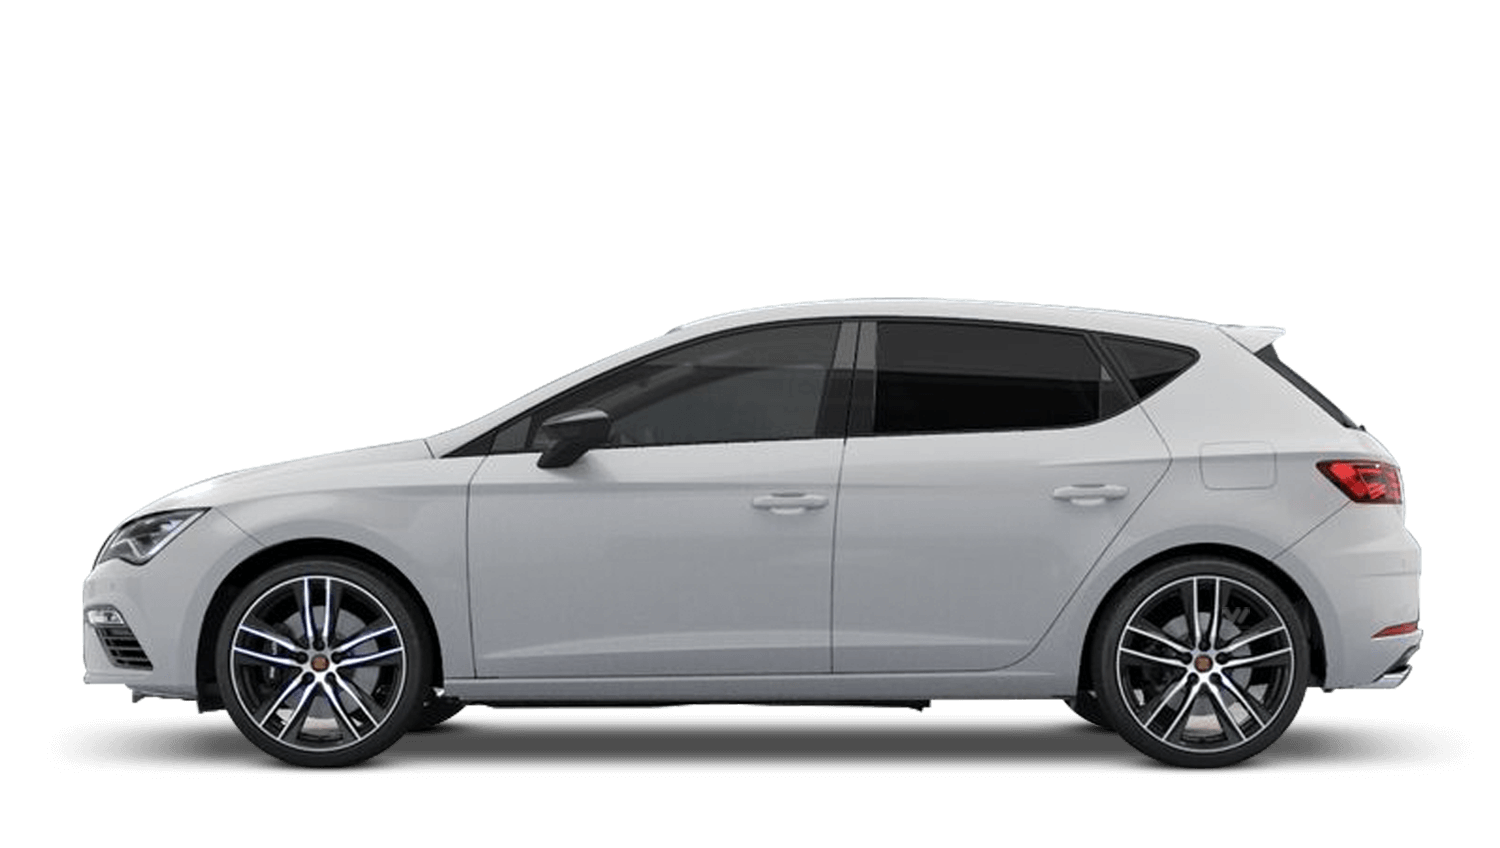 Nevada White (Metallic) Leon 5DR CUPRA